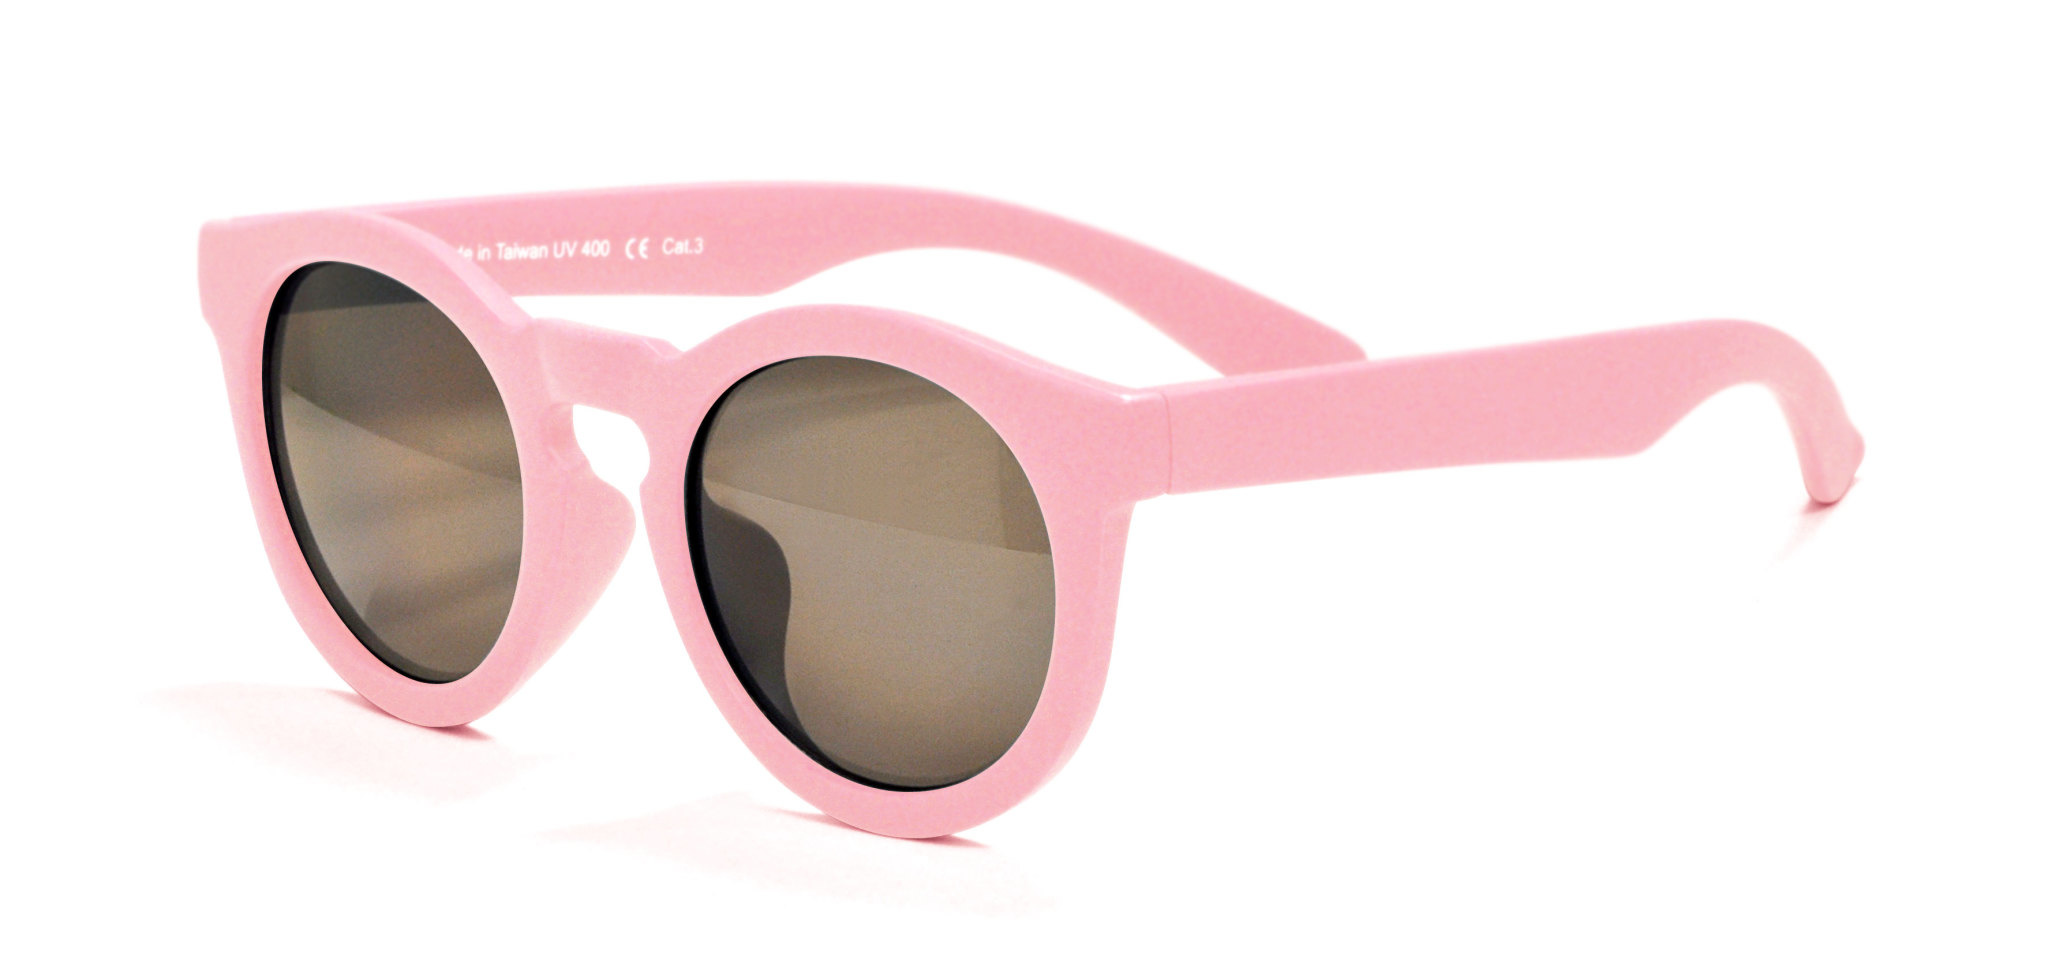 Real Shades Chill Glasses Dusty Rose Size 4+